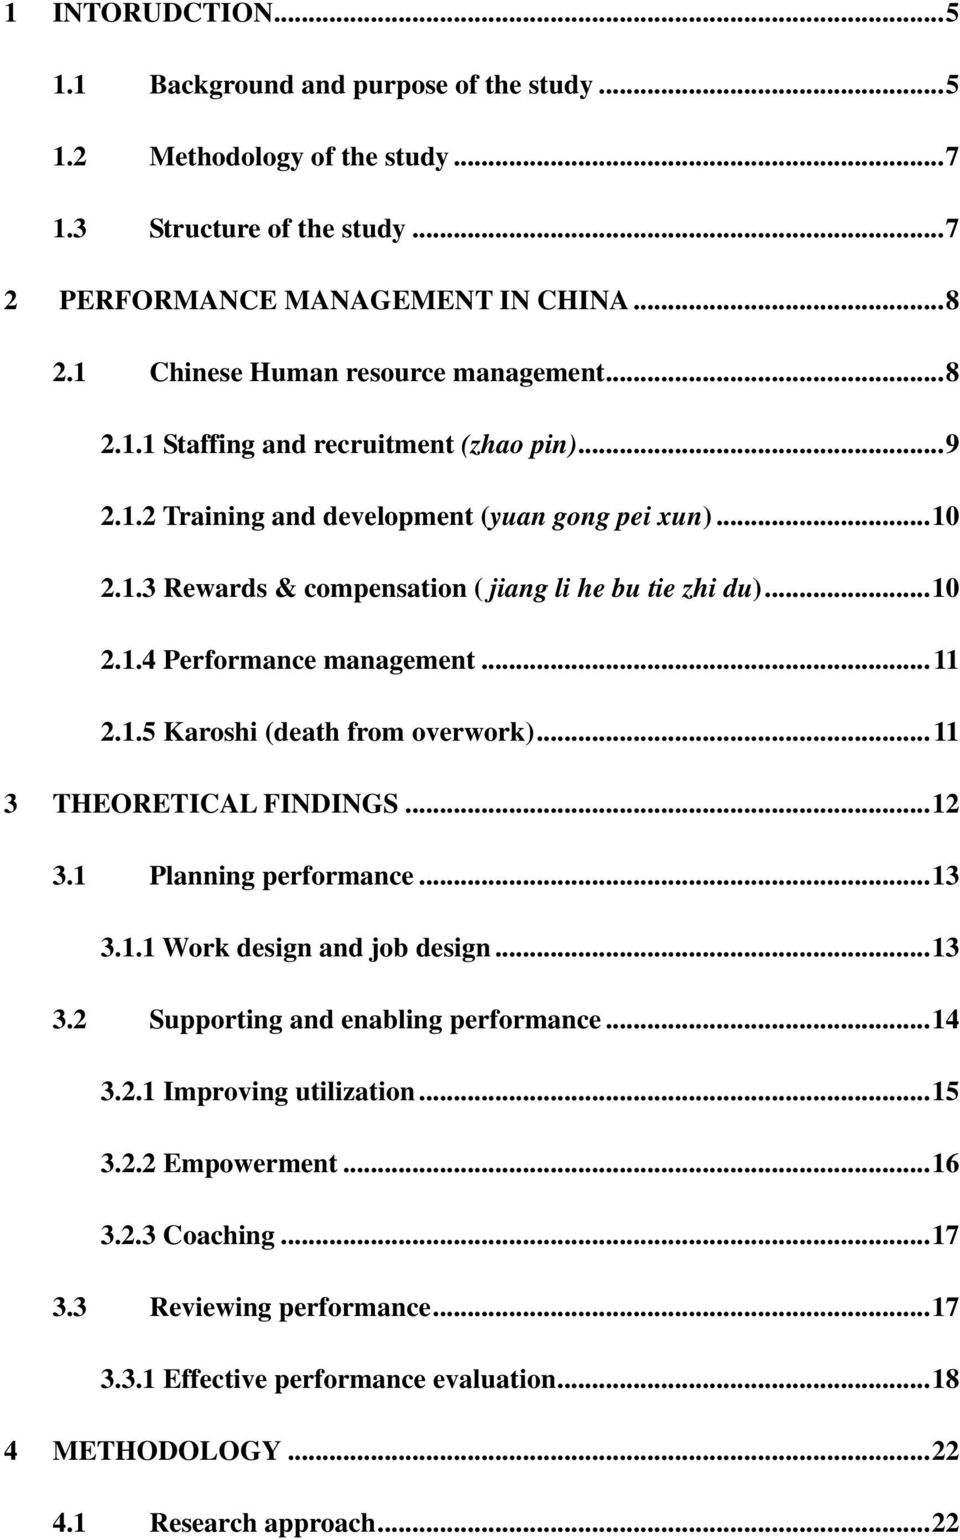 ..10 2.1.4 Performance management...11 2.1.5 Karoshi (death from overwork)...11 3 THEORETICAL FINDINGS...12 3.1 Planning performance...13 3.1.1 Work design and job design...13 3.2 Supporting and enabling performance.